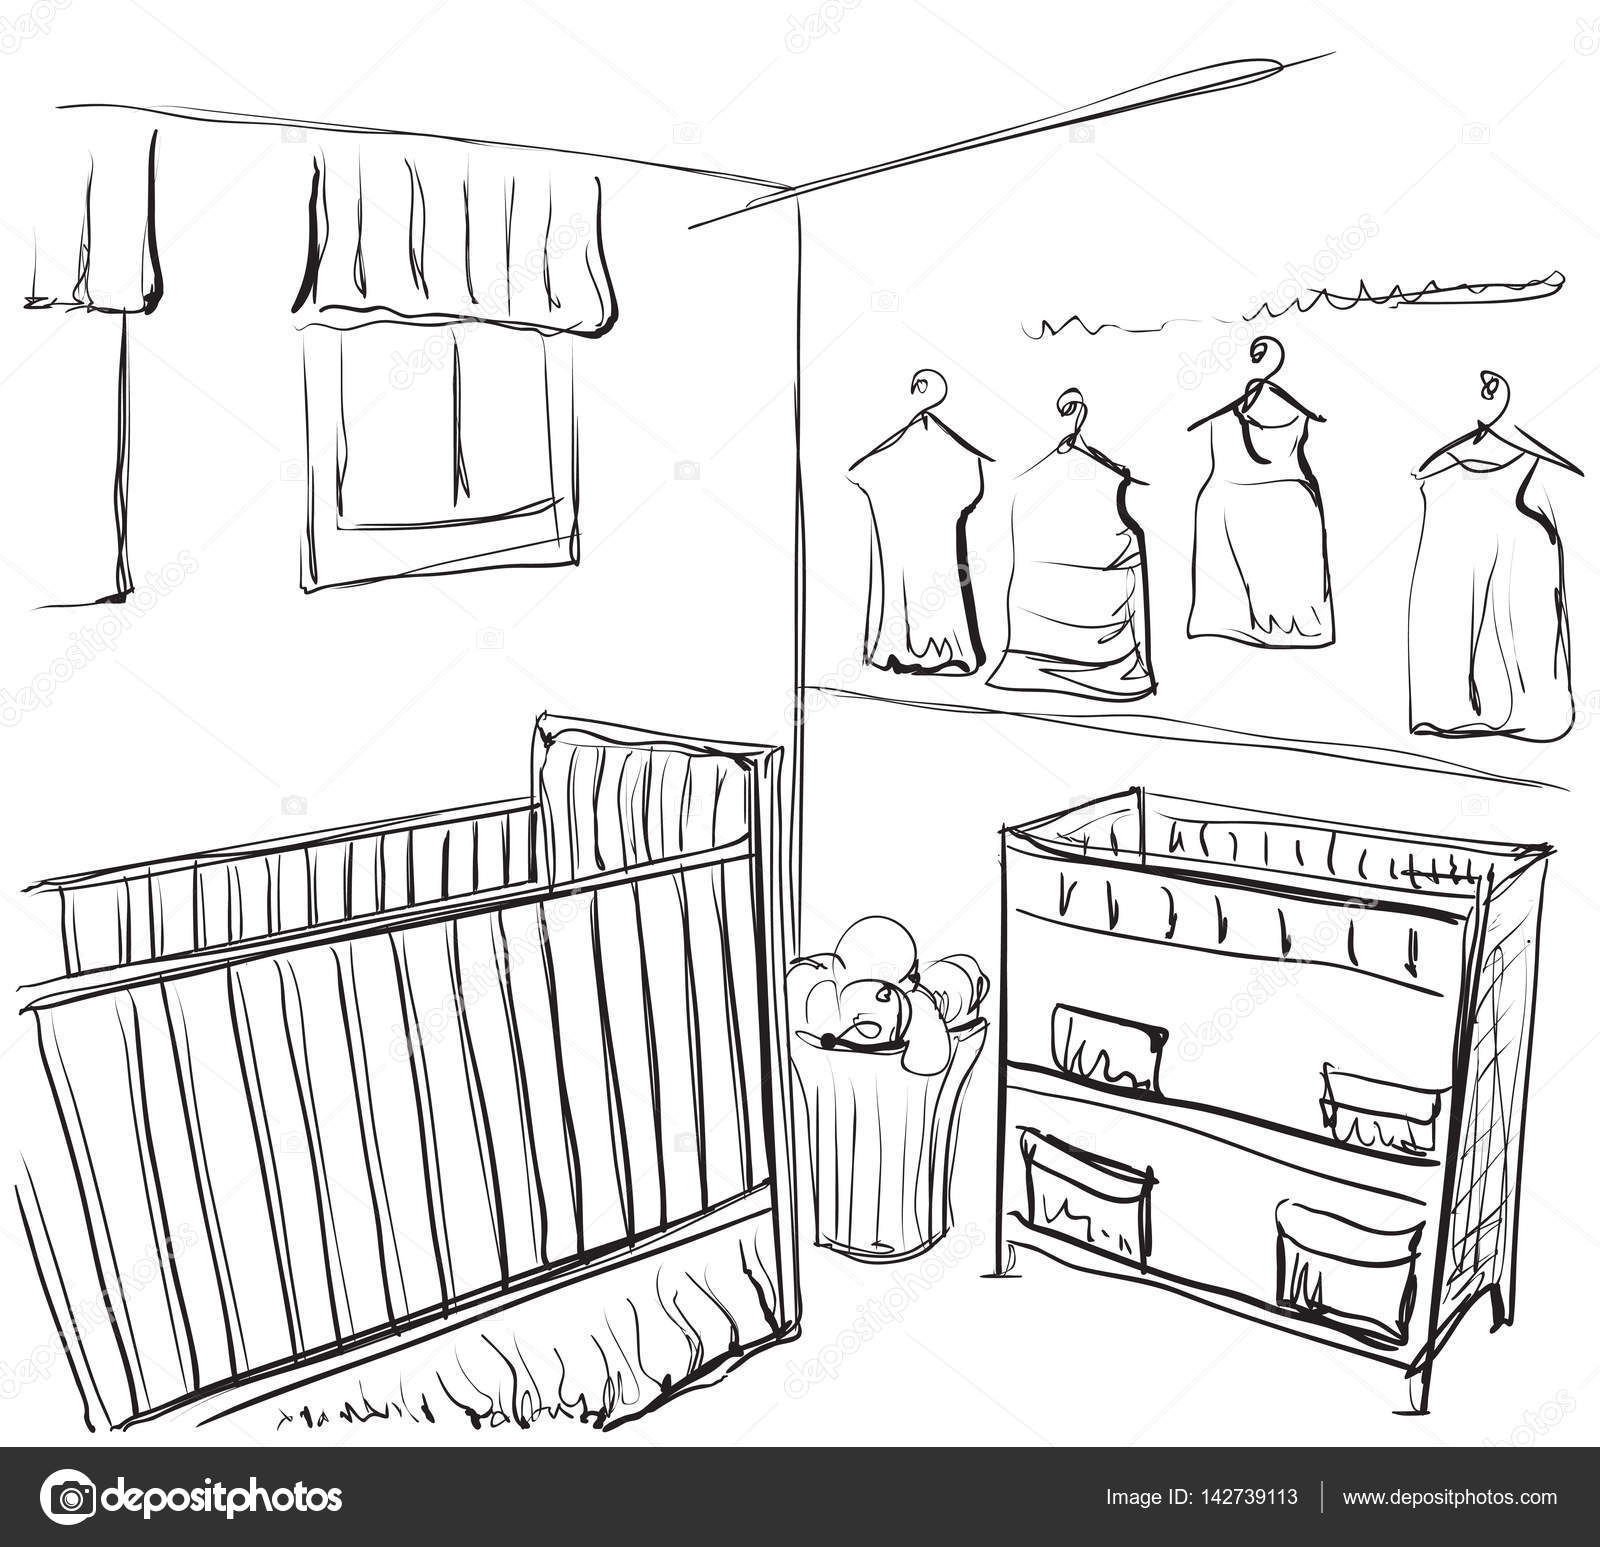 1600x1547 Drawn Children Room. Furniture Sketch. Baby Bed Stock Vector